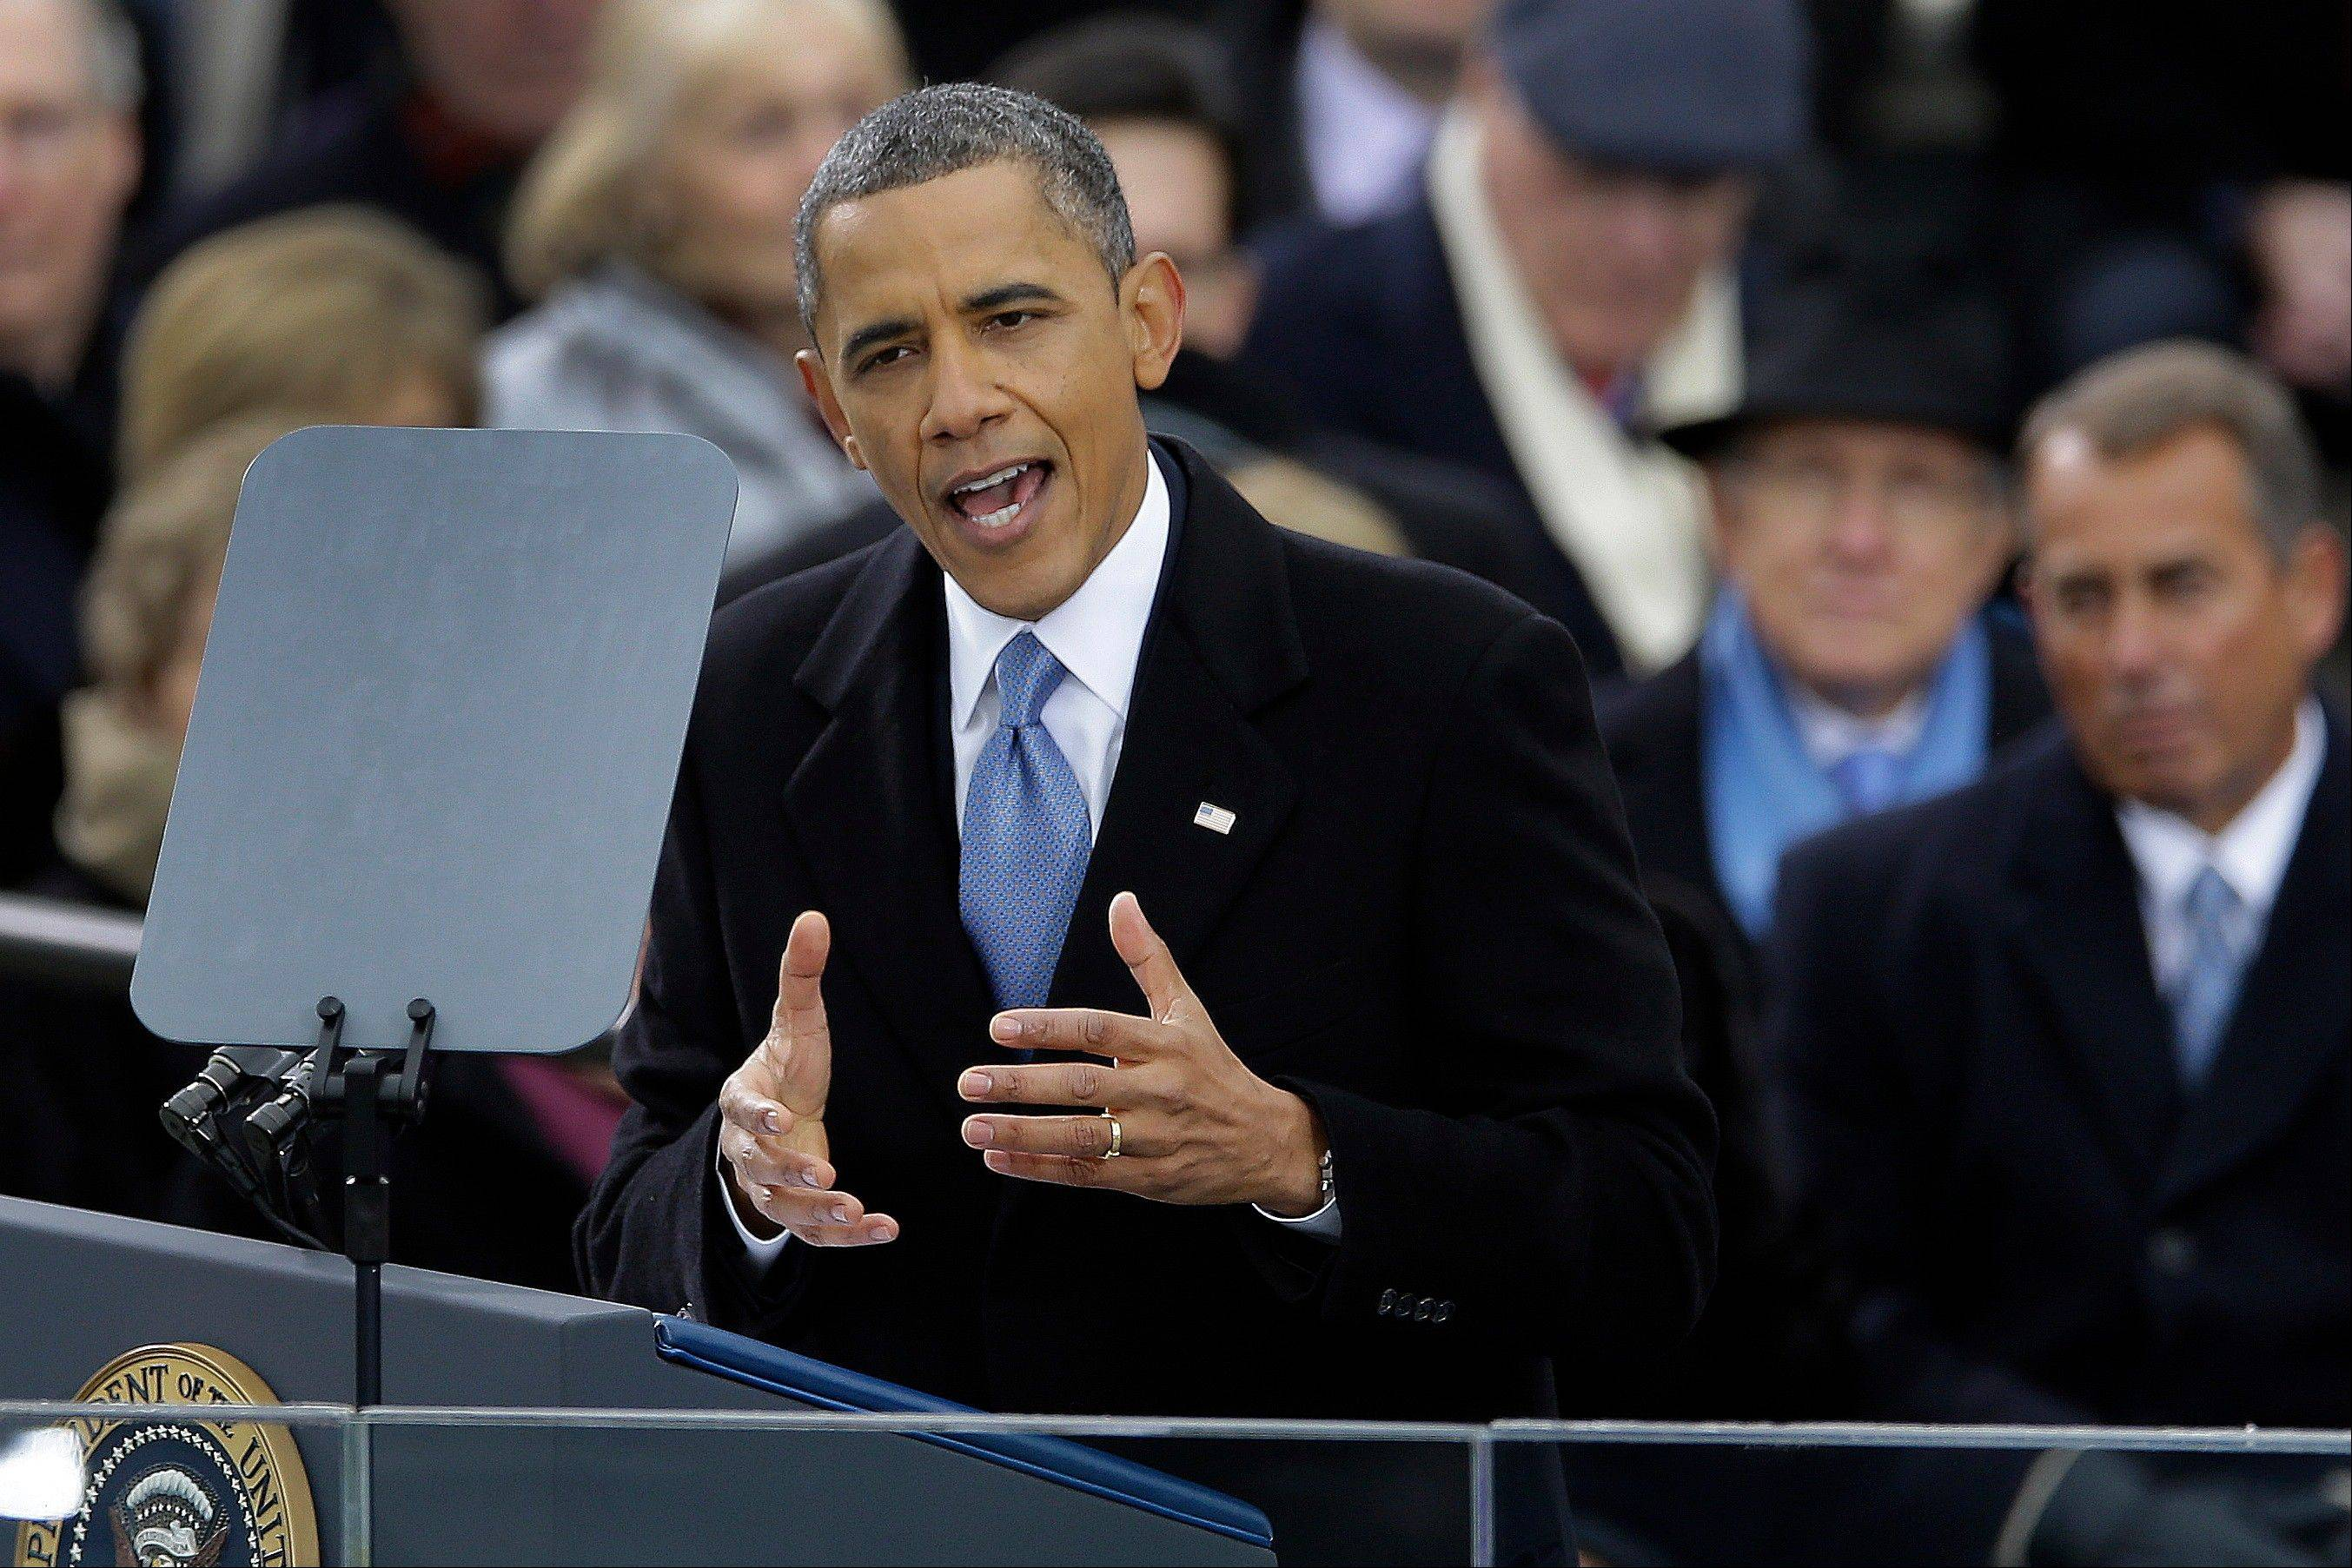 President Barack Obama devoted one word during his inaugural address � �deficit� � to the issue that brought Washington to the brink of fiscal crises time and again during his first term.